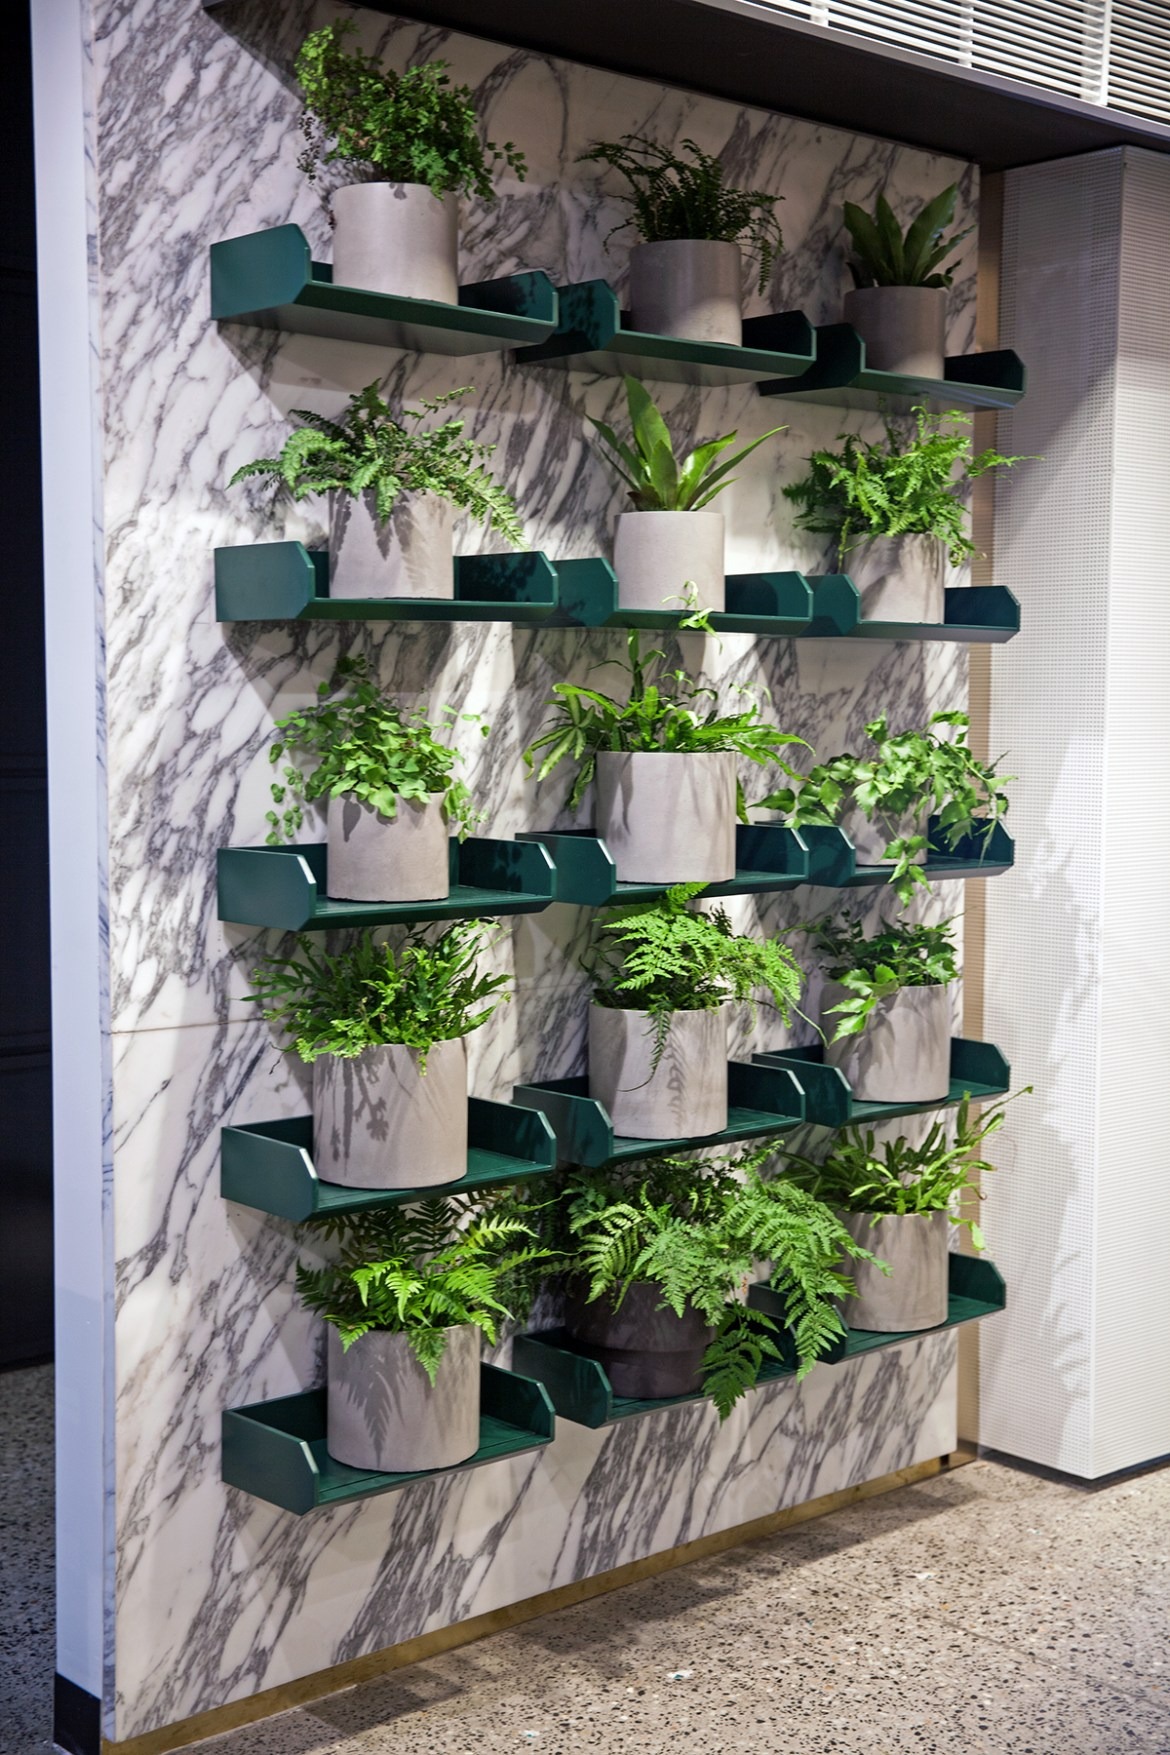 Tribe Hotel Perth, interior decor Jenelle from travel blog Inspiring Wit boutique hotel profile